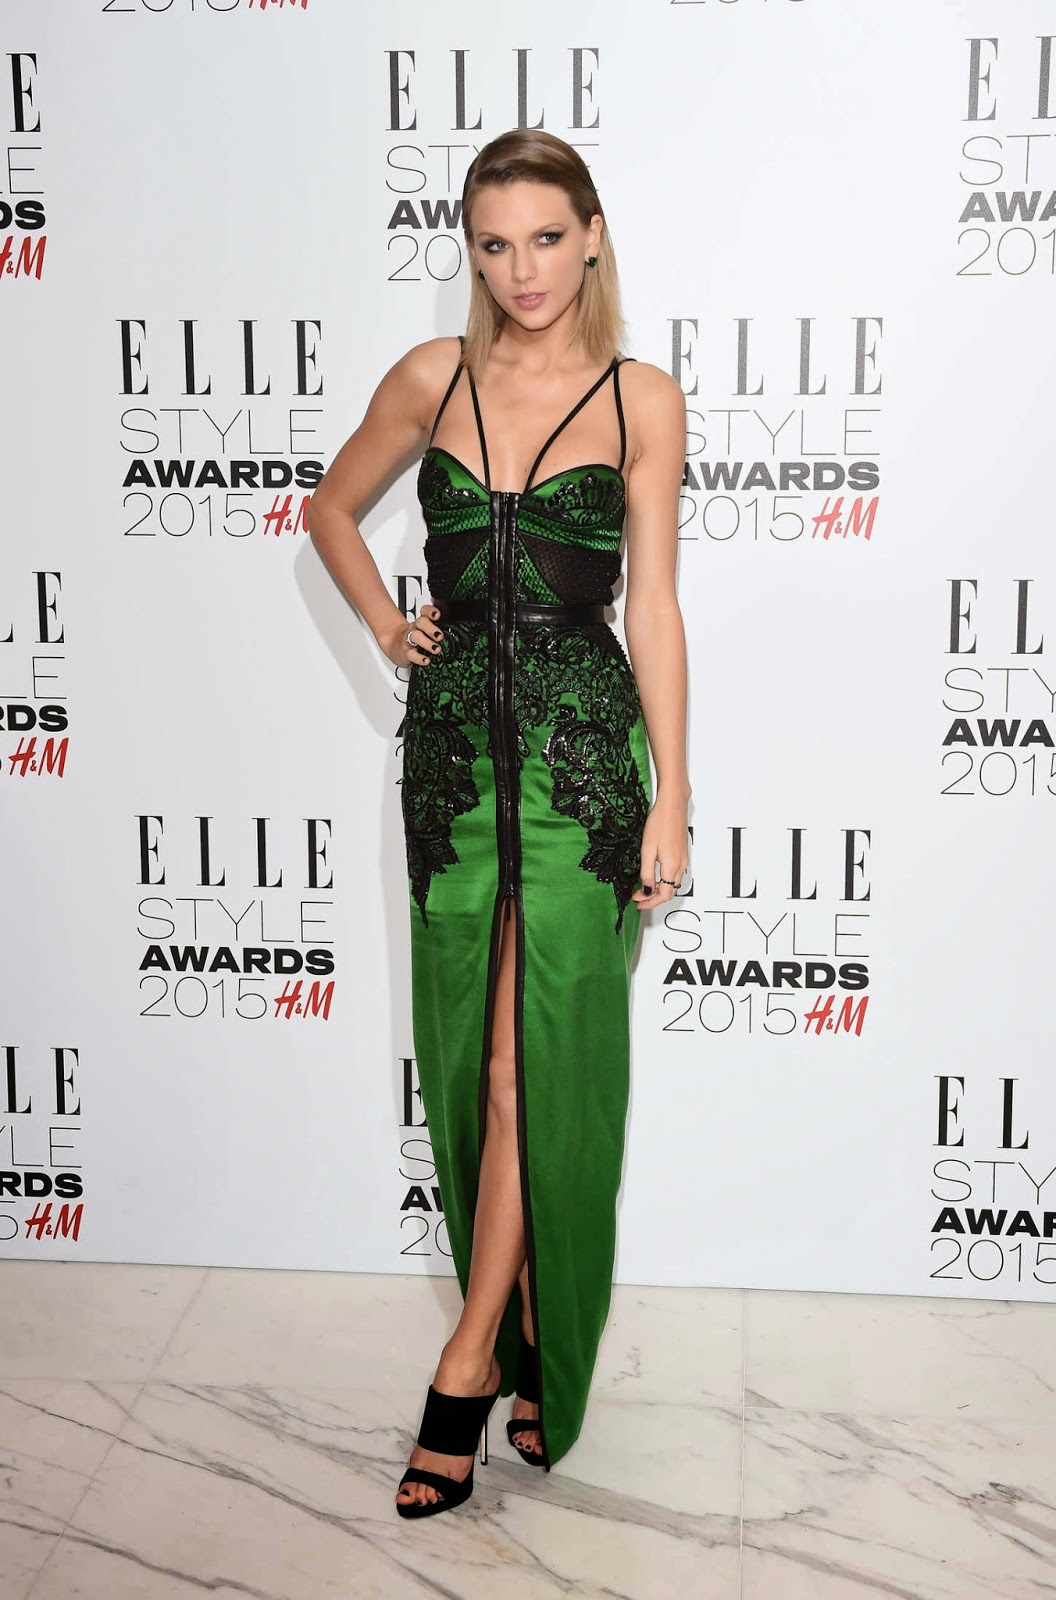 Taylor Swift is sultry in green at the 2015 Elle Style Awards in London